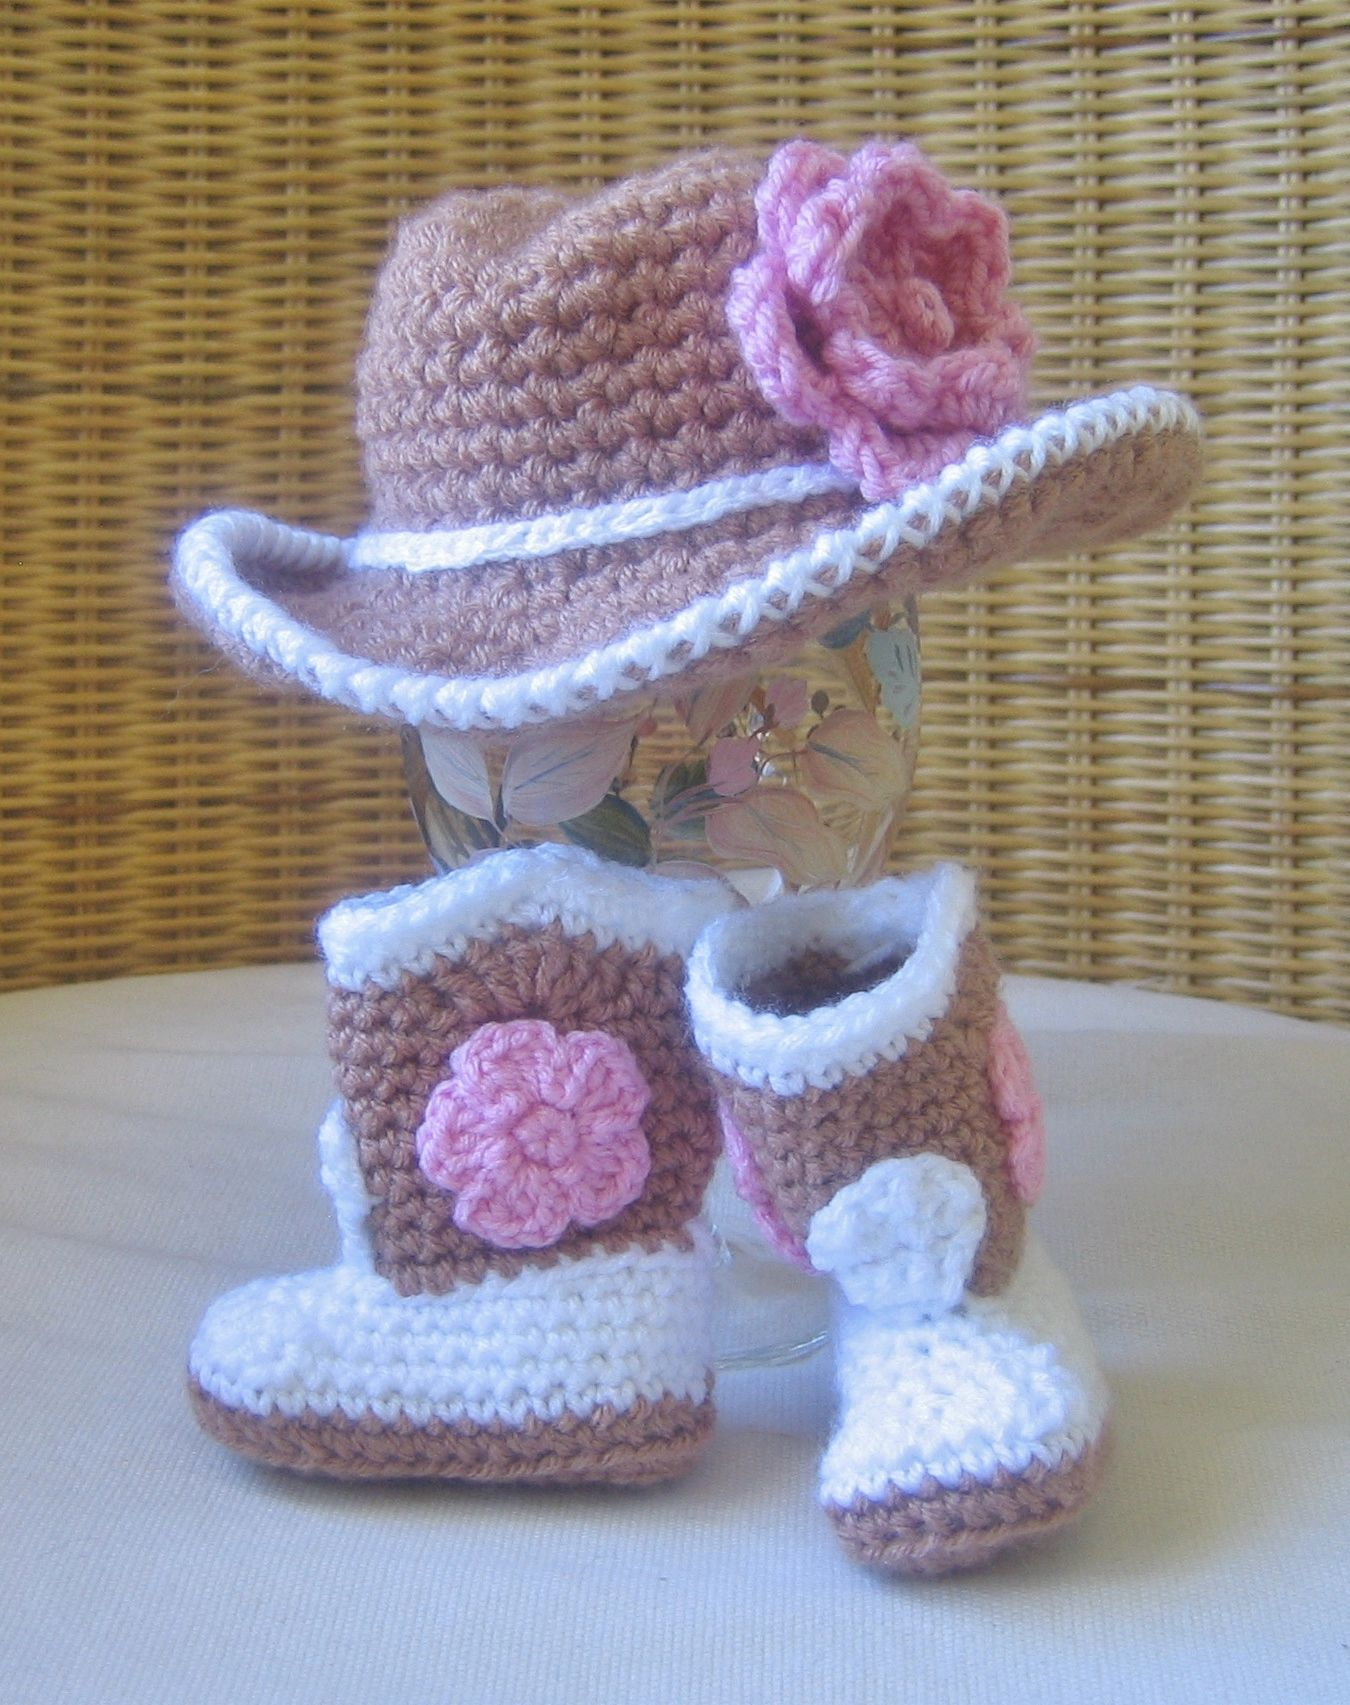 Tiny cowgirl set, crochet cowboy hat and boots with pink flowers ...